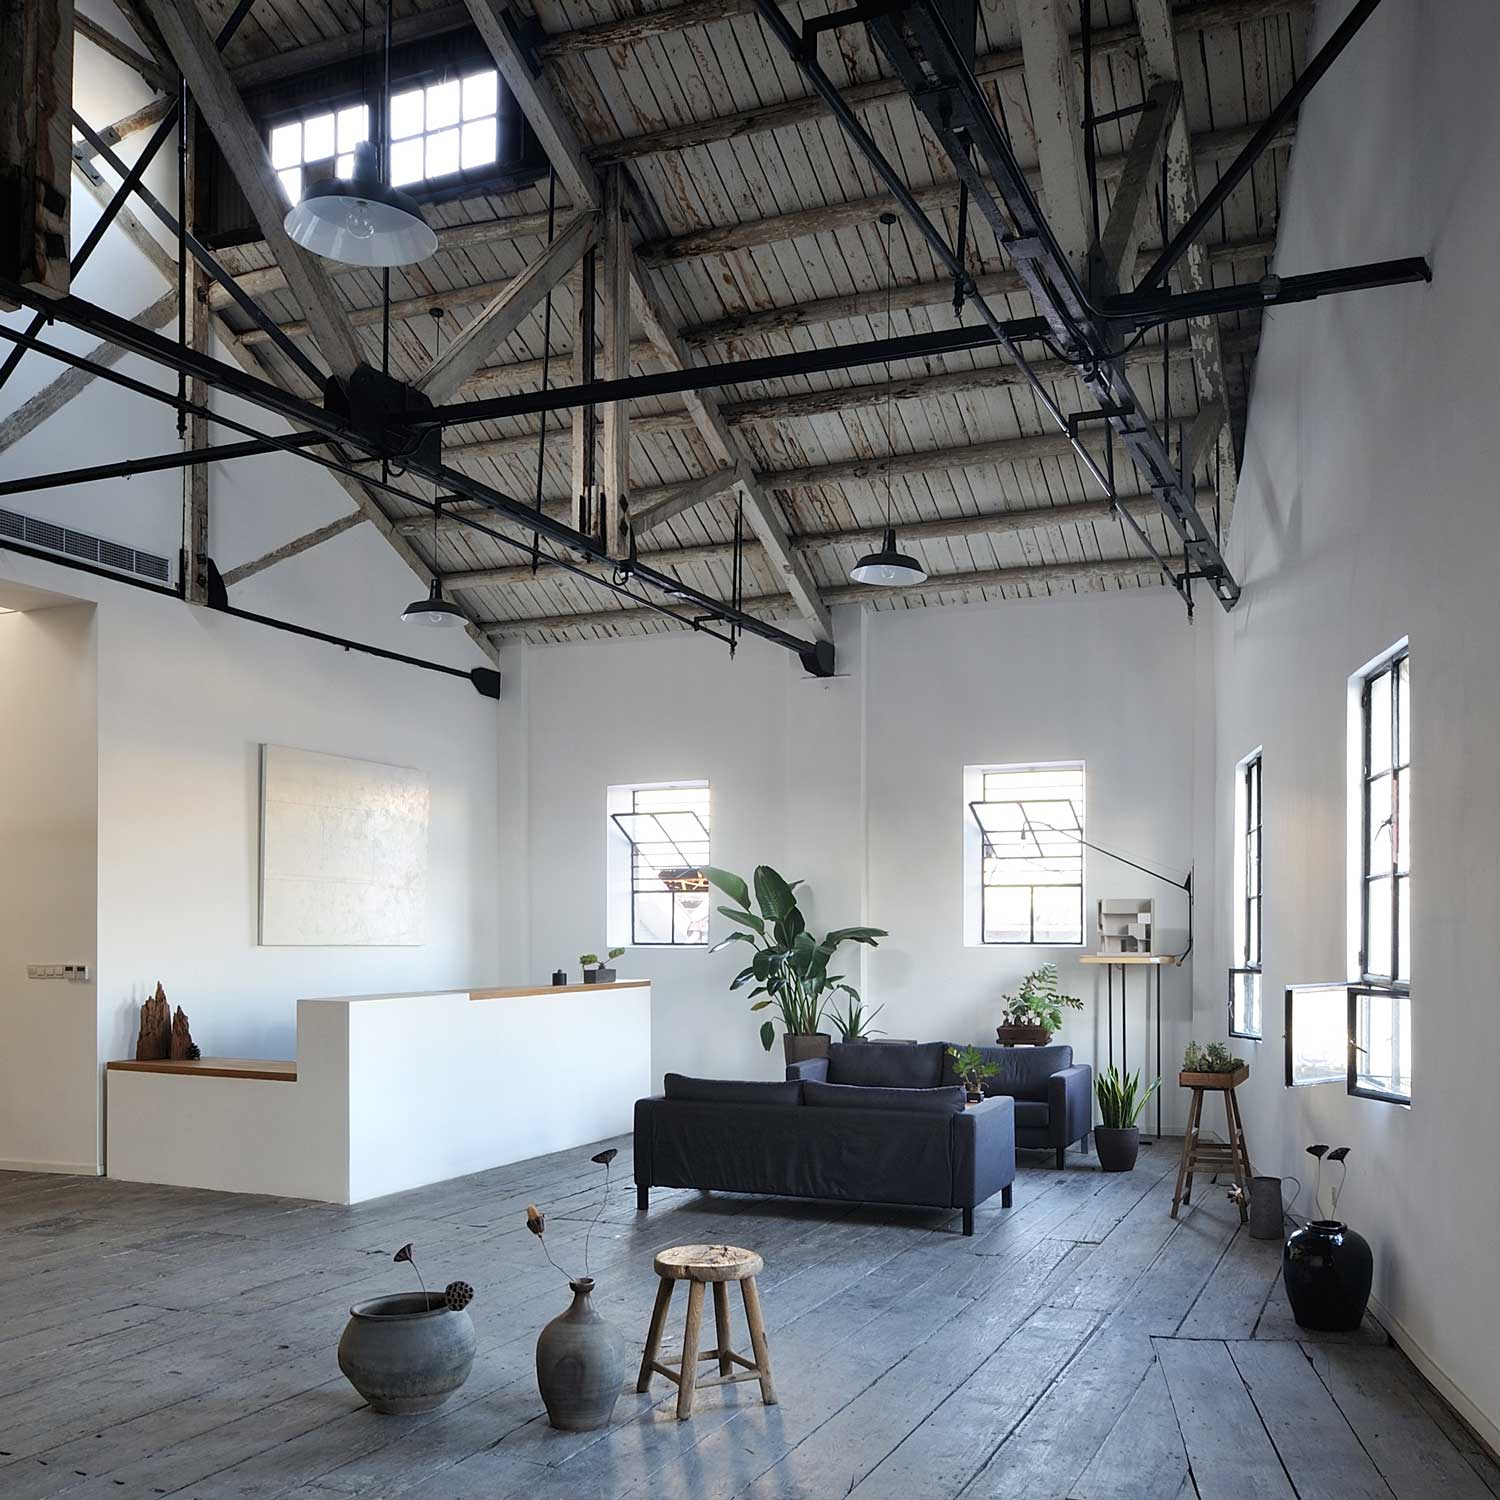 Waimatou Co working Loft by Naturalbuild Architects in